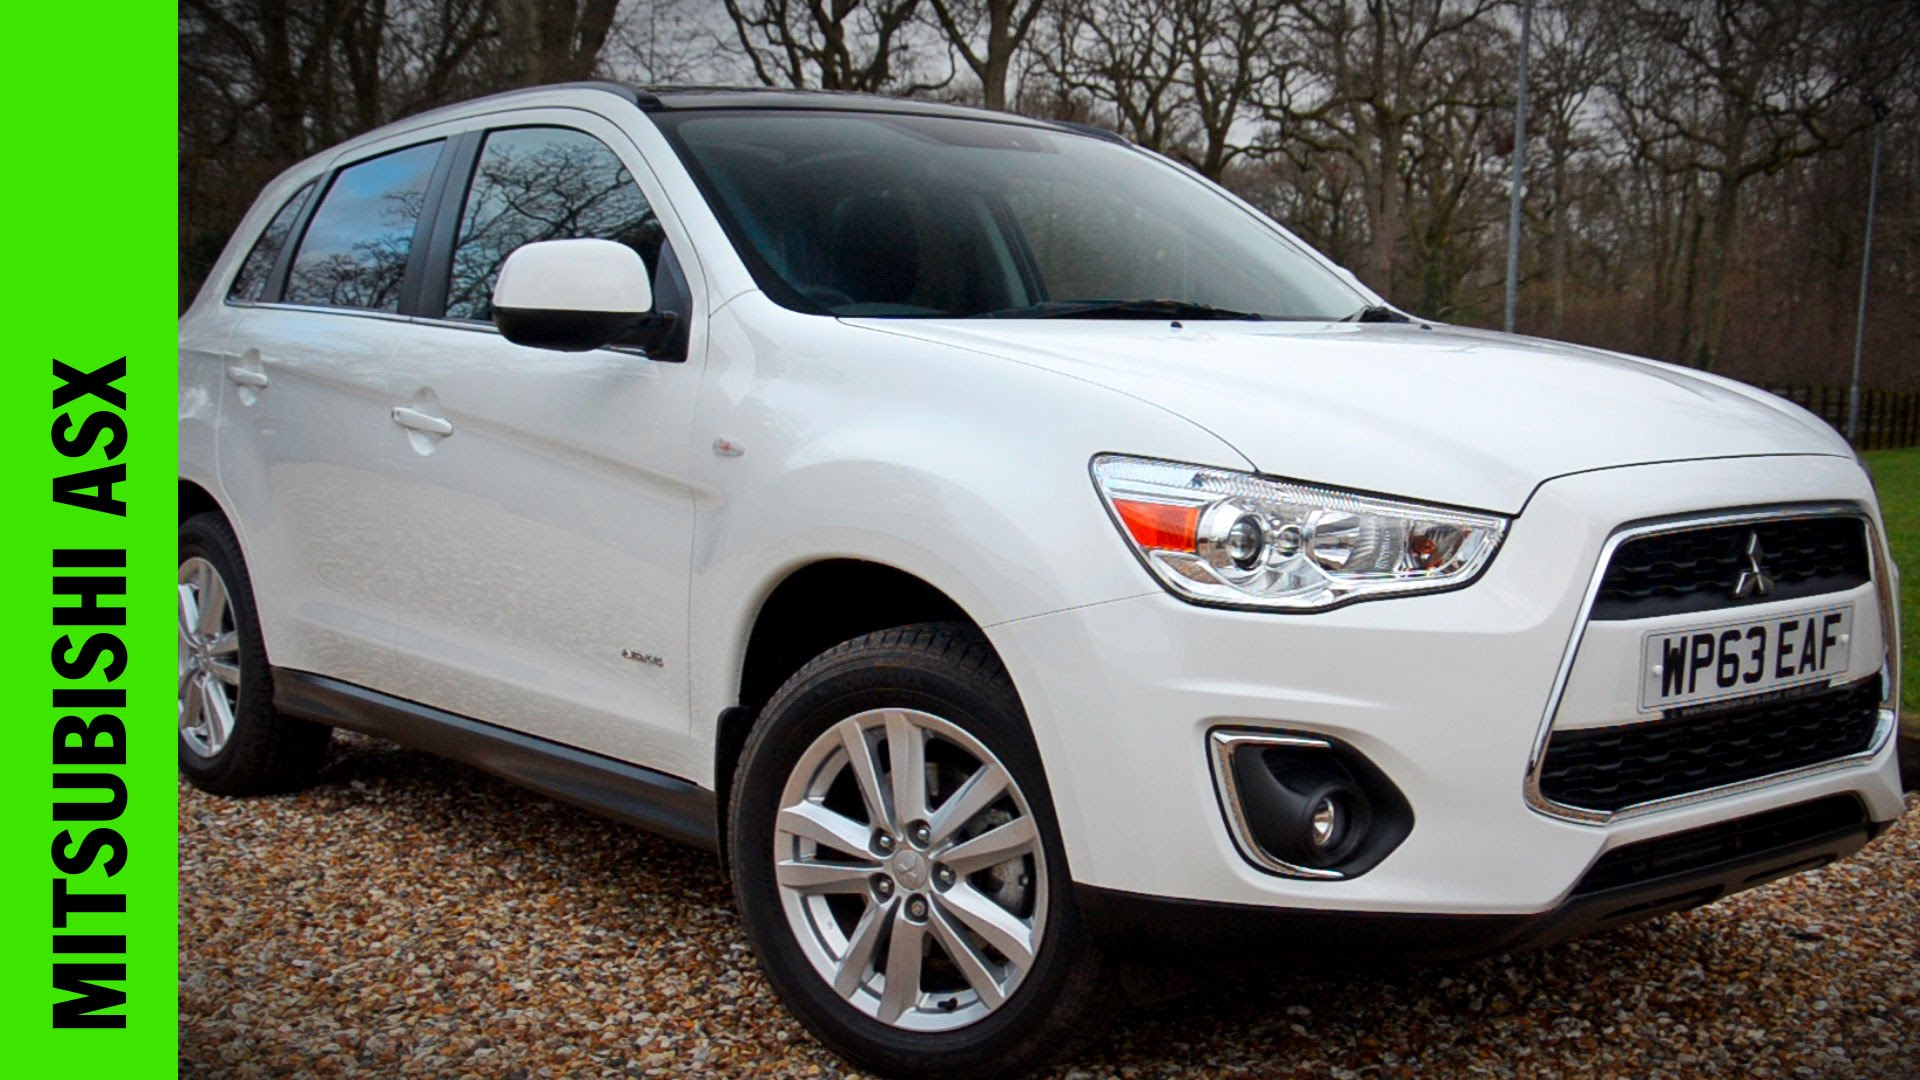 2014 mitsubishi asx pictures information and specs. Black Bedroom Furniture Sets. Home Design Ideas